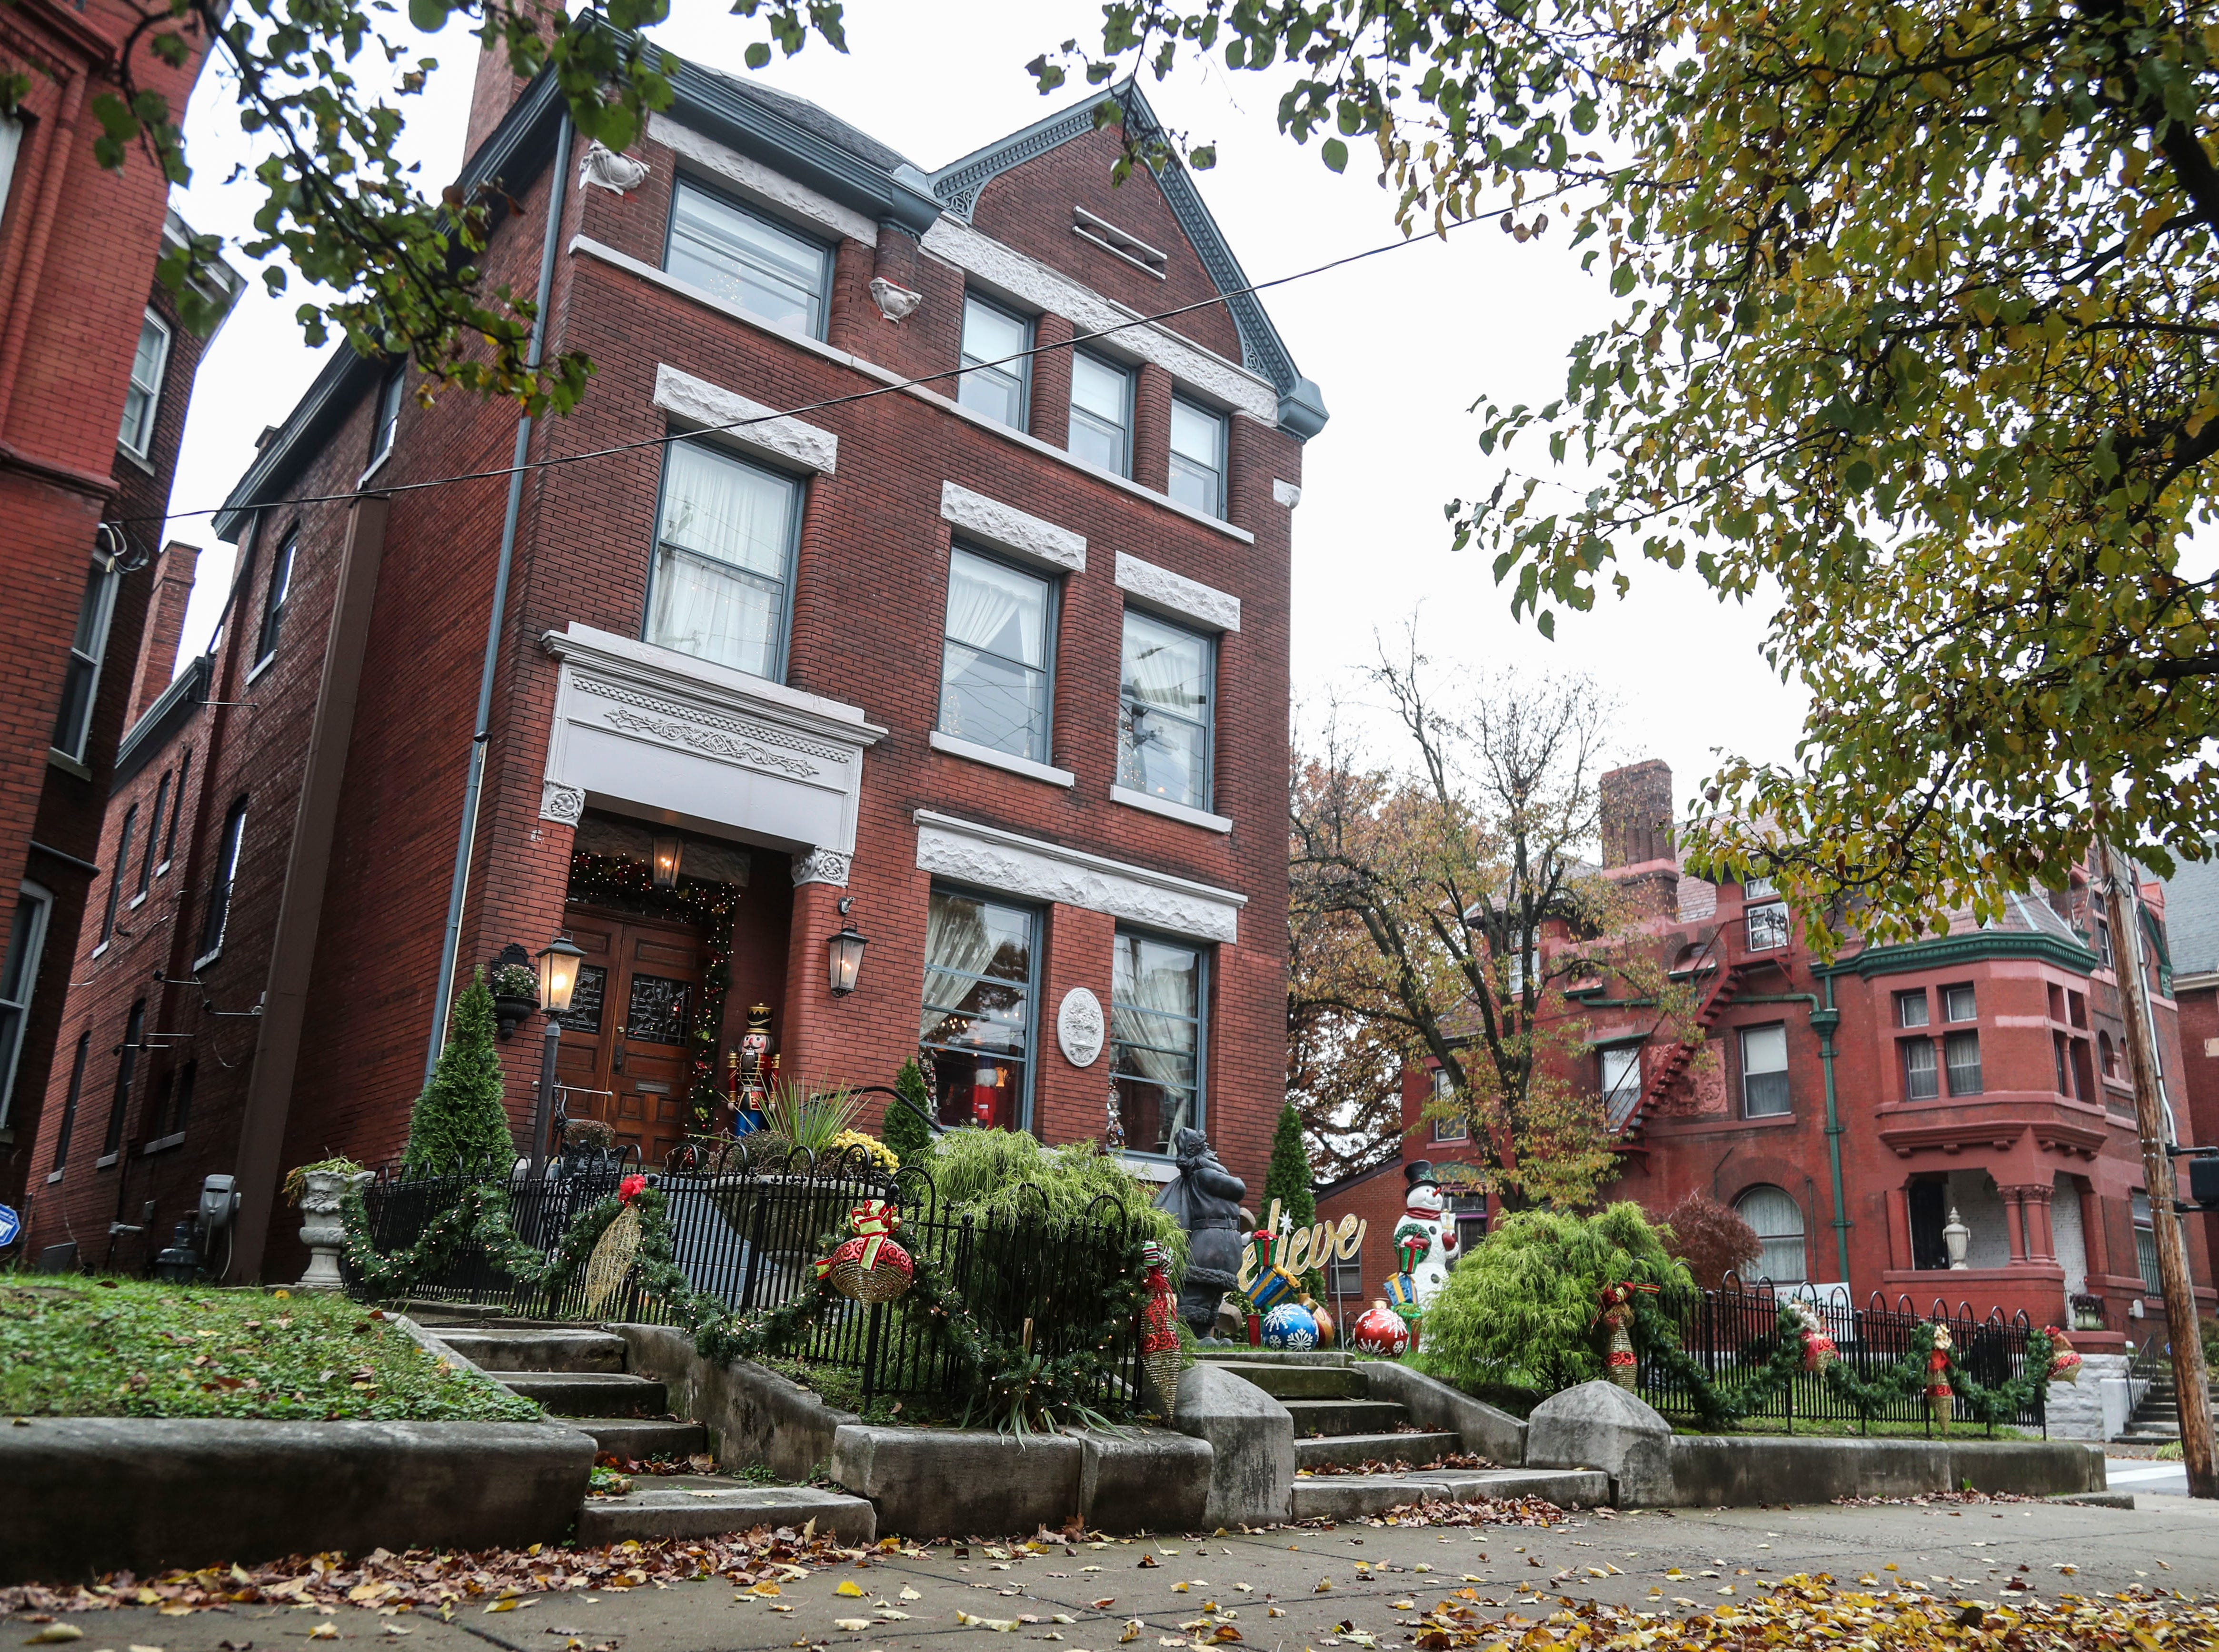 """""""Living in Old Louisville is wonderful,"""" said homeowner David Brown. """"This is the best thing in this city. The homes are magnificent.I look at this house as, I am just its caretaker until the next person gets it – because this house is here forever."""" The home was built in 1893."""